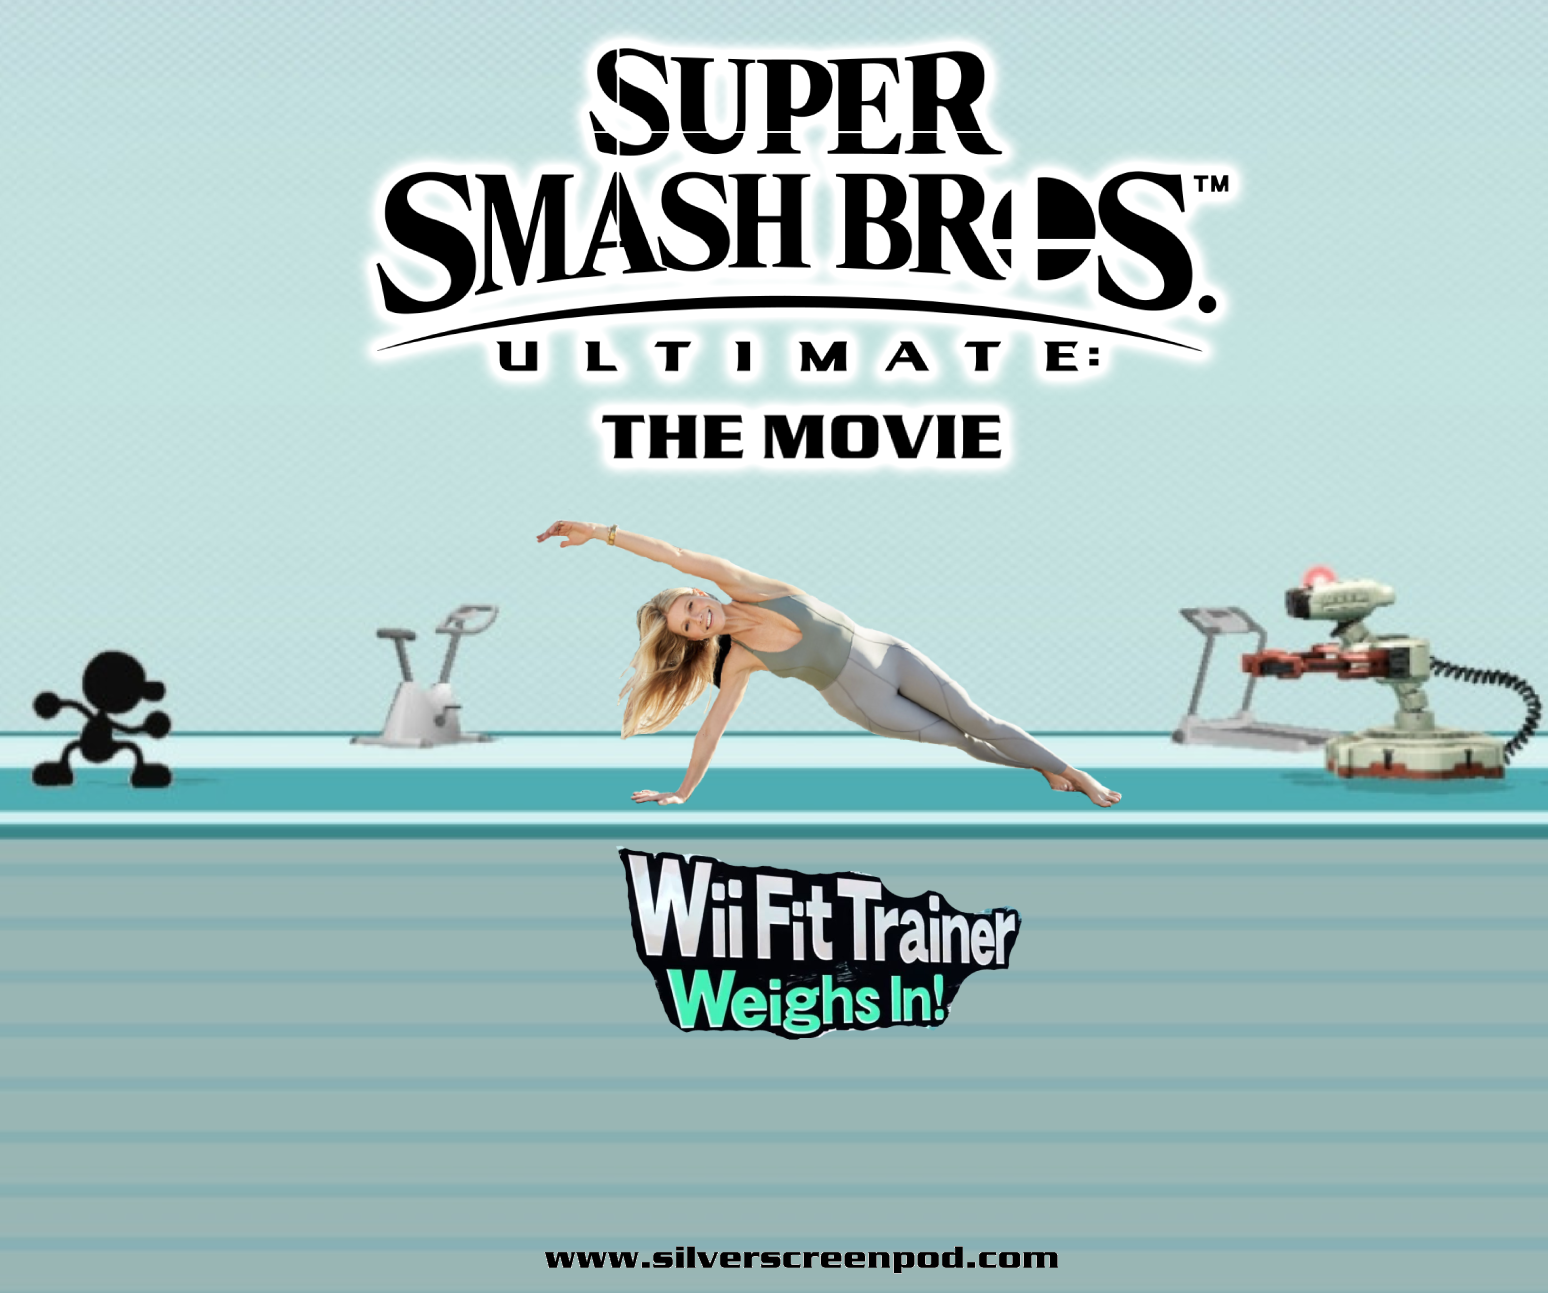 wii fit trainer with logo+.png